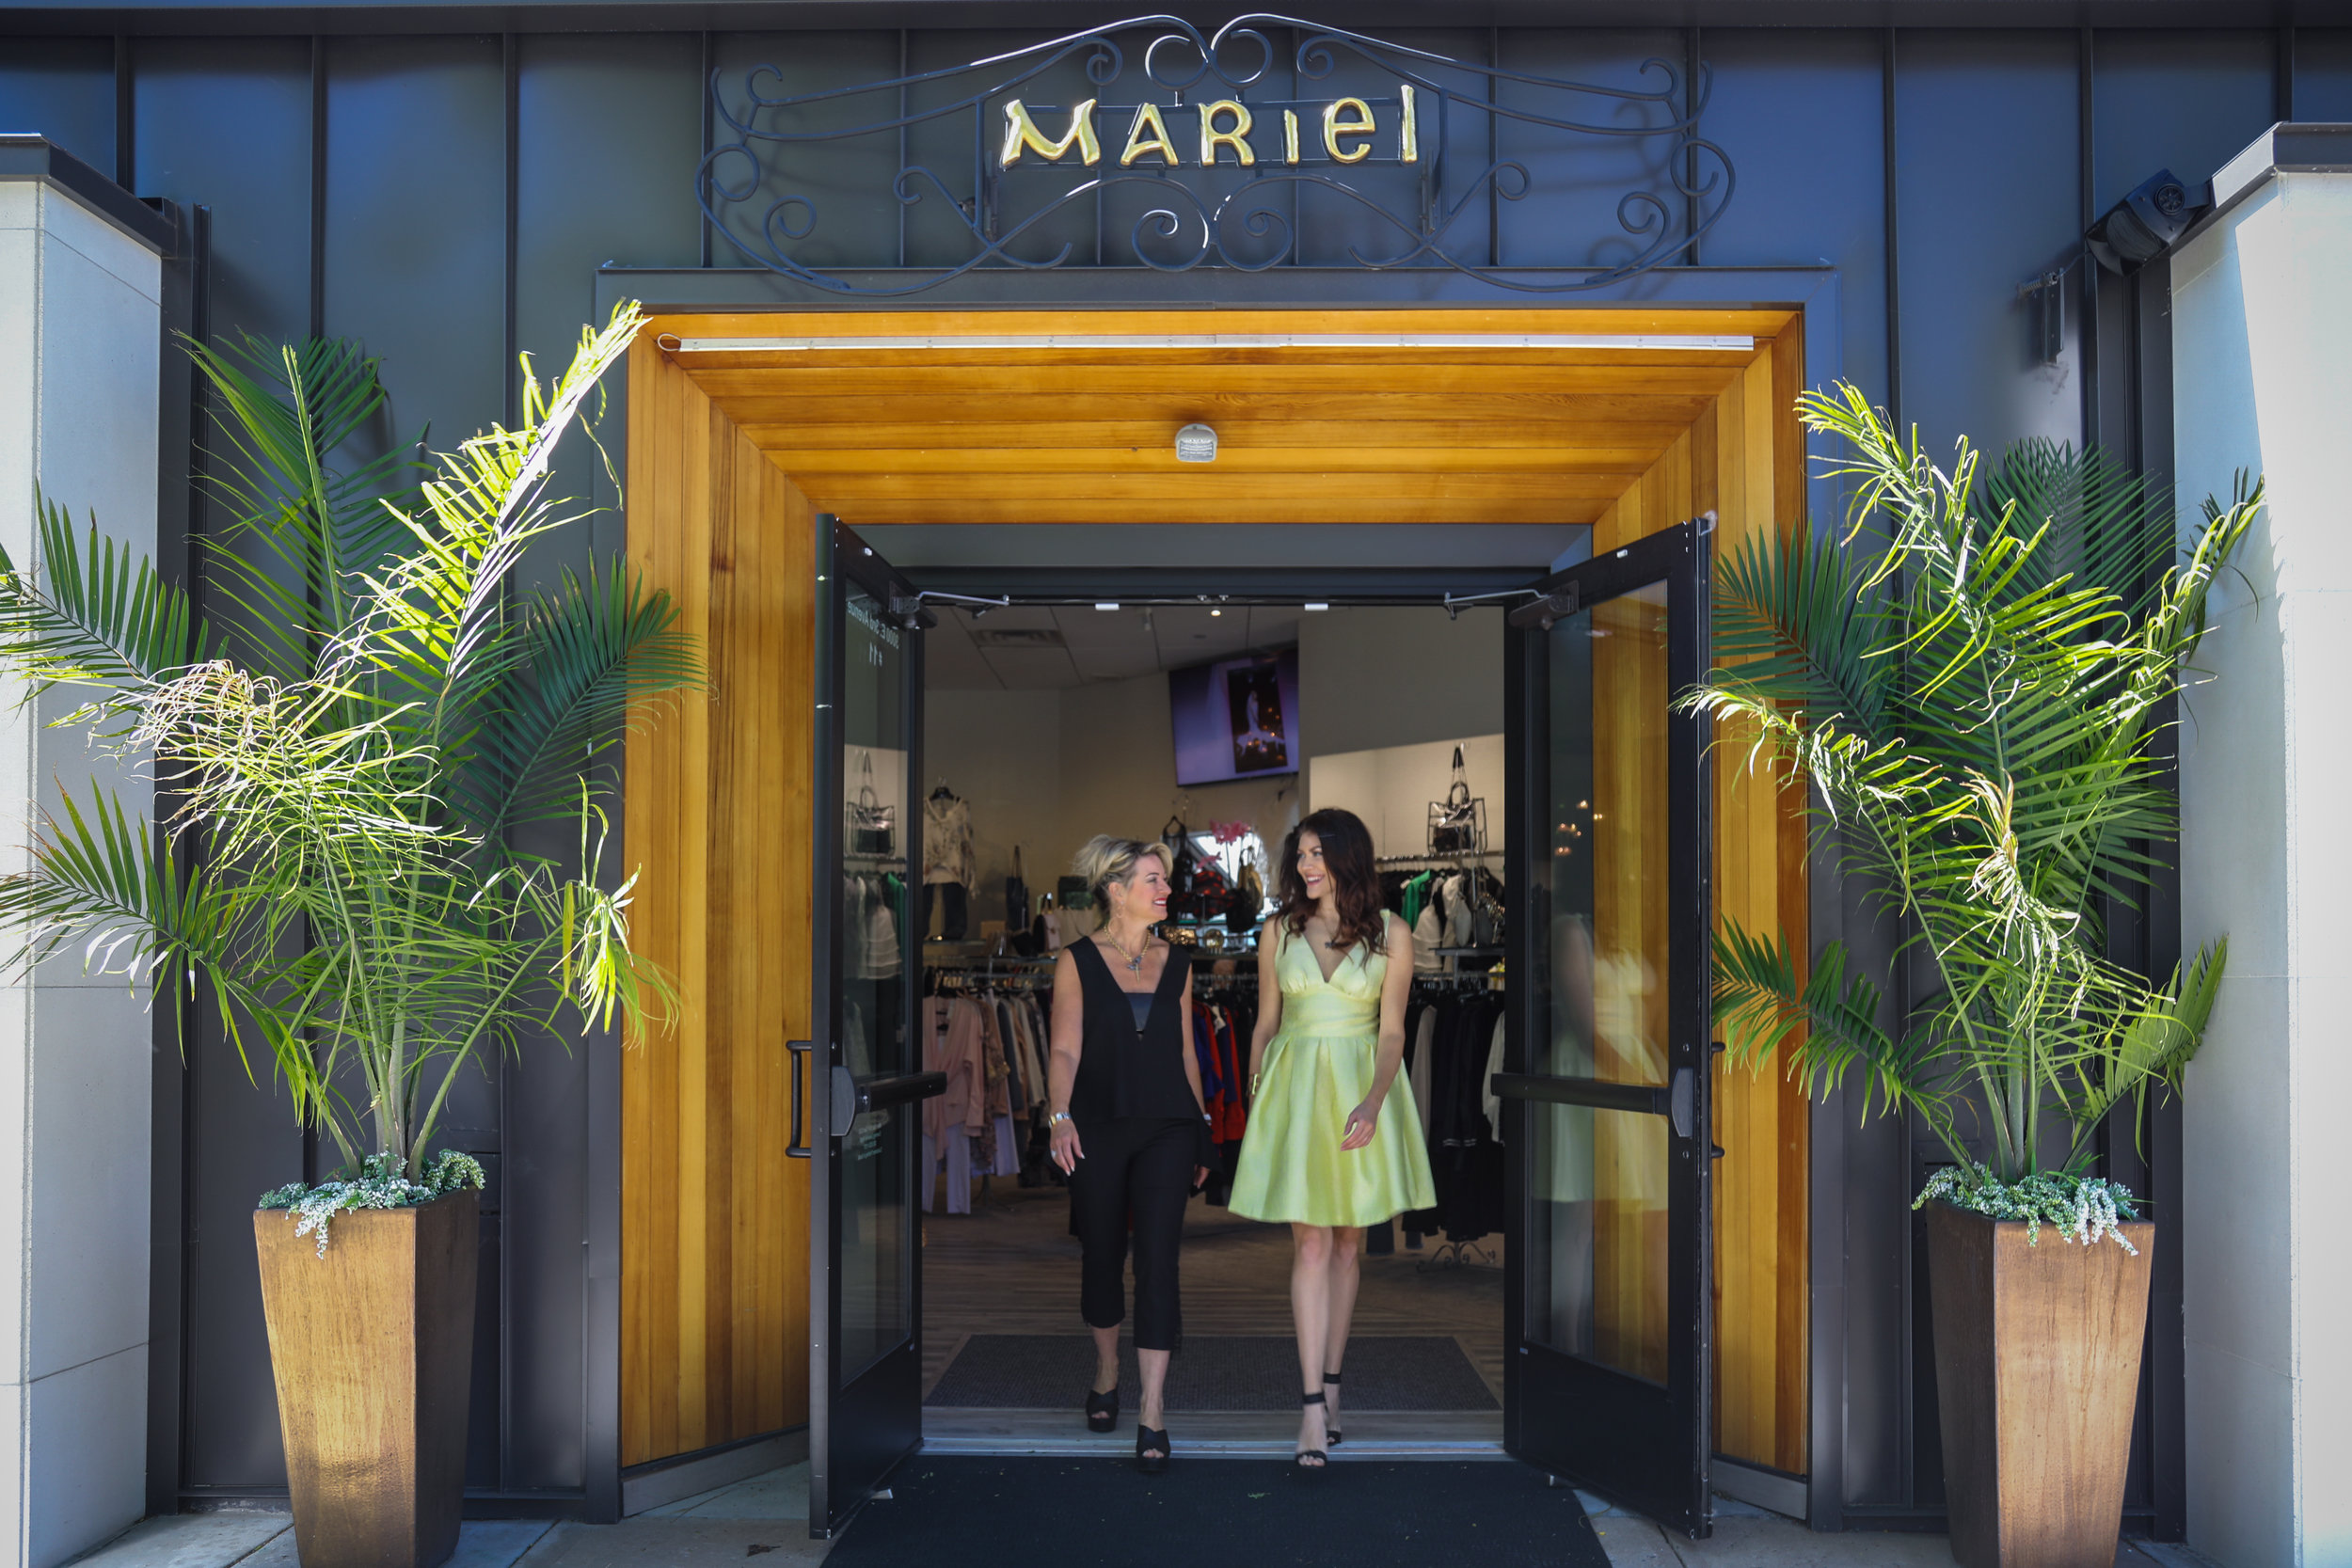 Hailey leaving Mariel with boutique owner Denise Snyder.